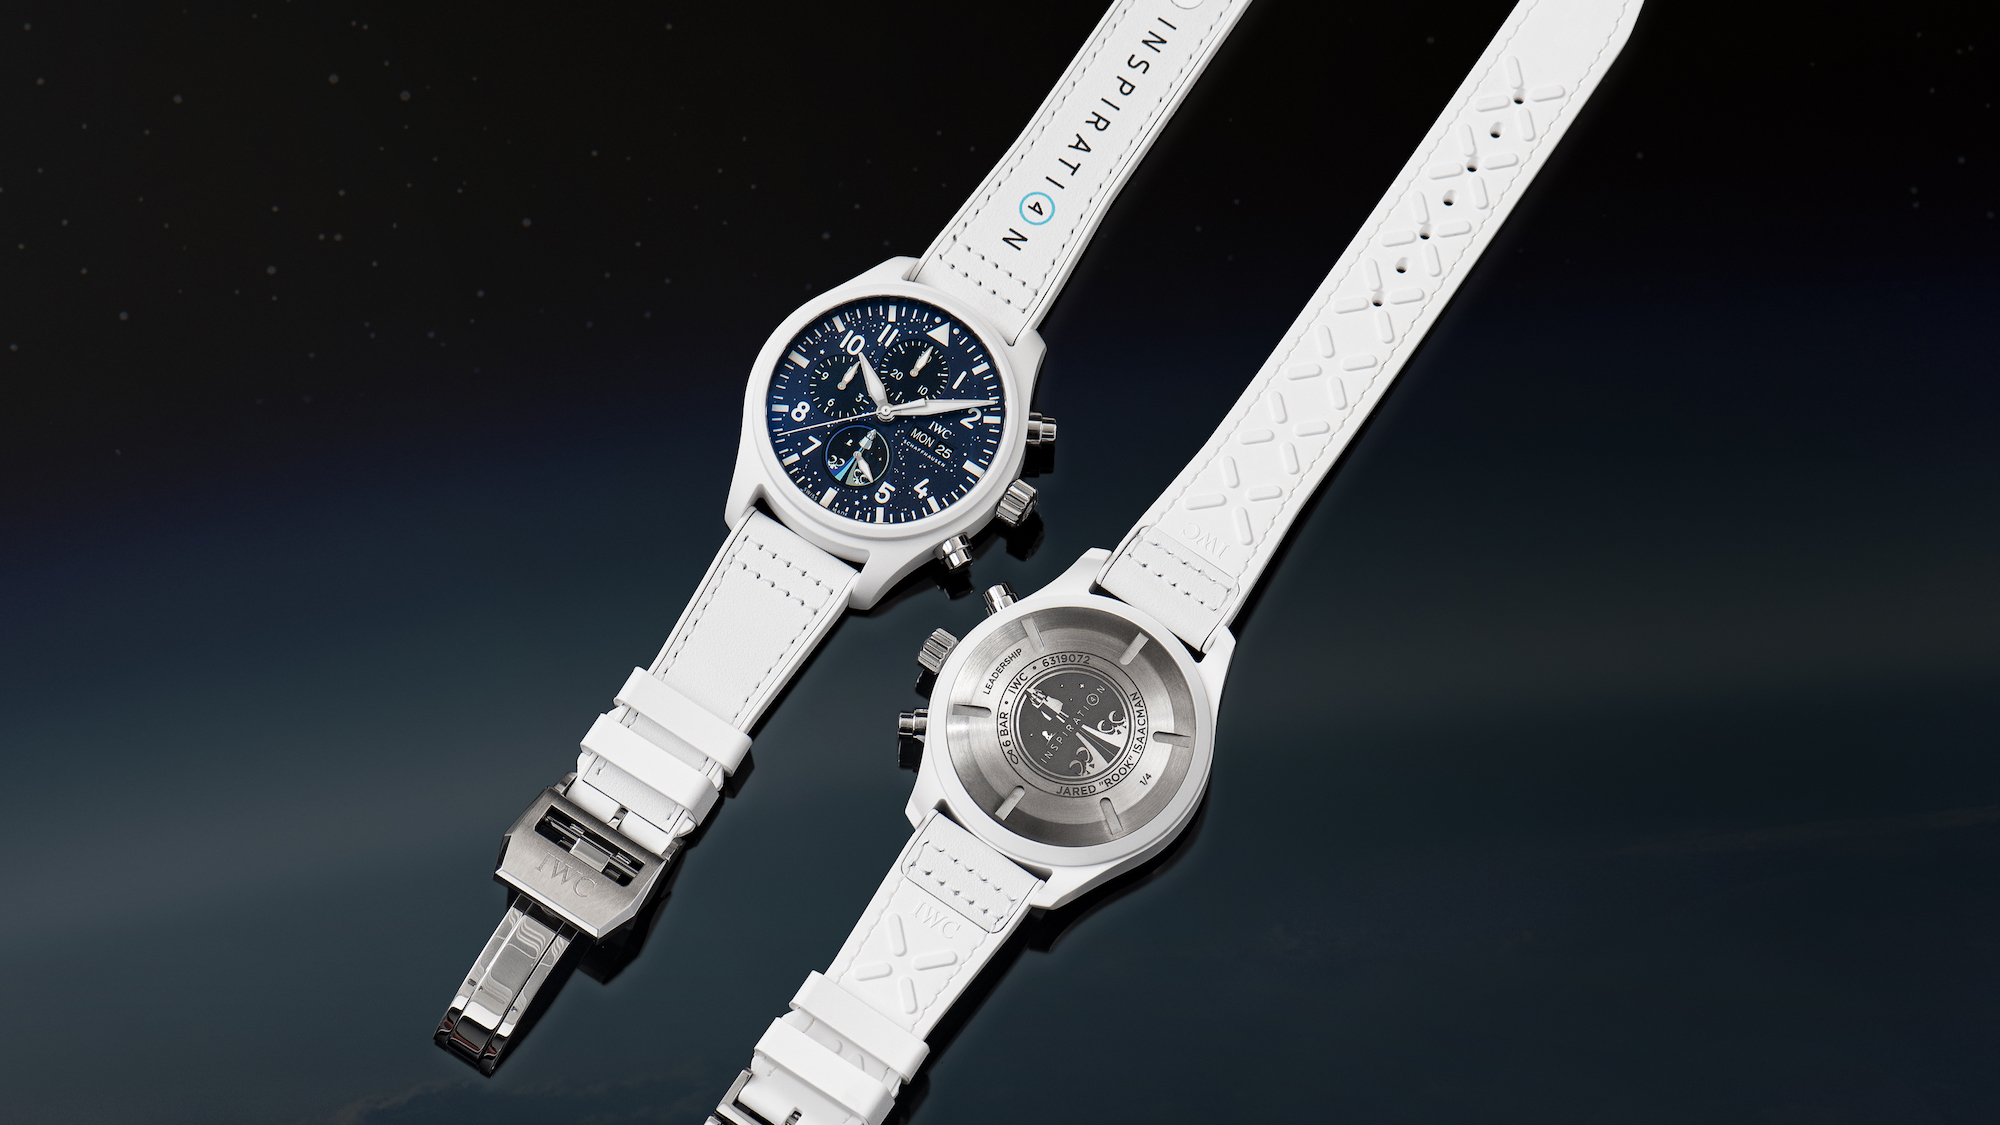 IWC Pilot's Watch Chronograph Inspiration4 Edition IW389110 Frontal y trasera